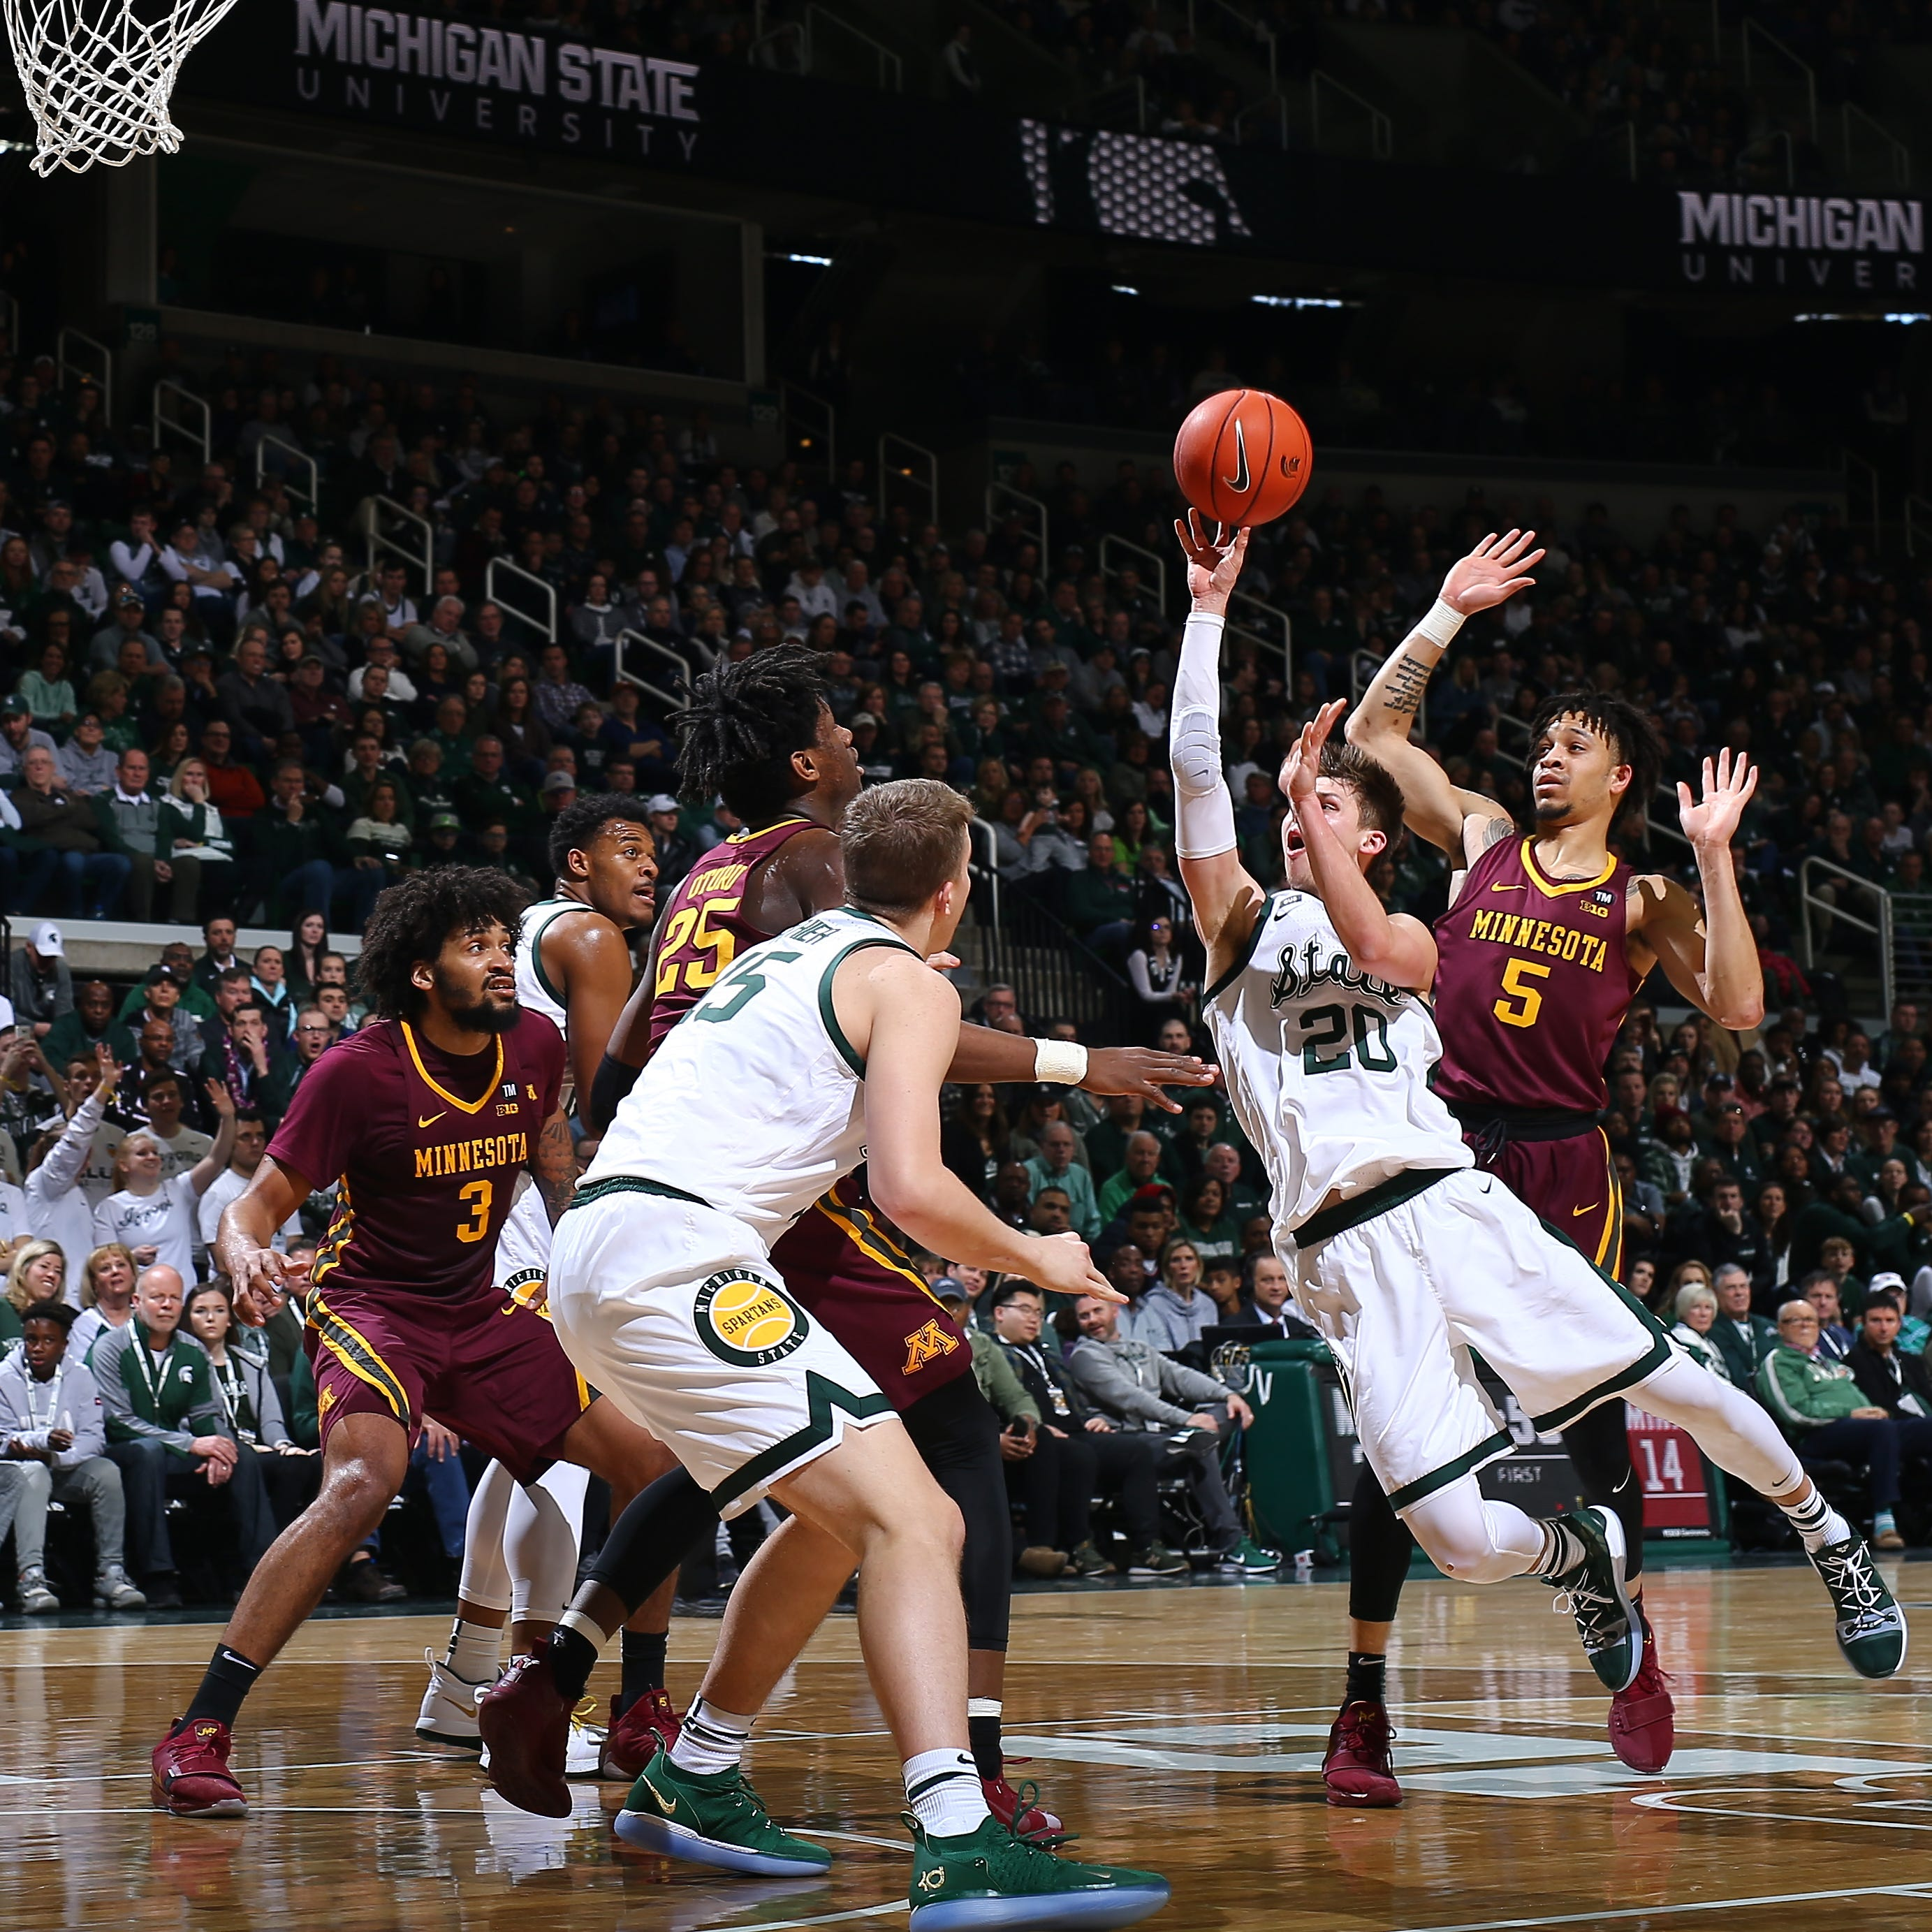 """Michigan State discovered a secret army Matt McQuaid - his dad """"class ="""" more-section-stories-thumb"""